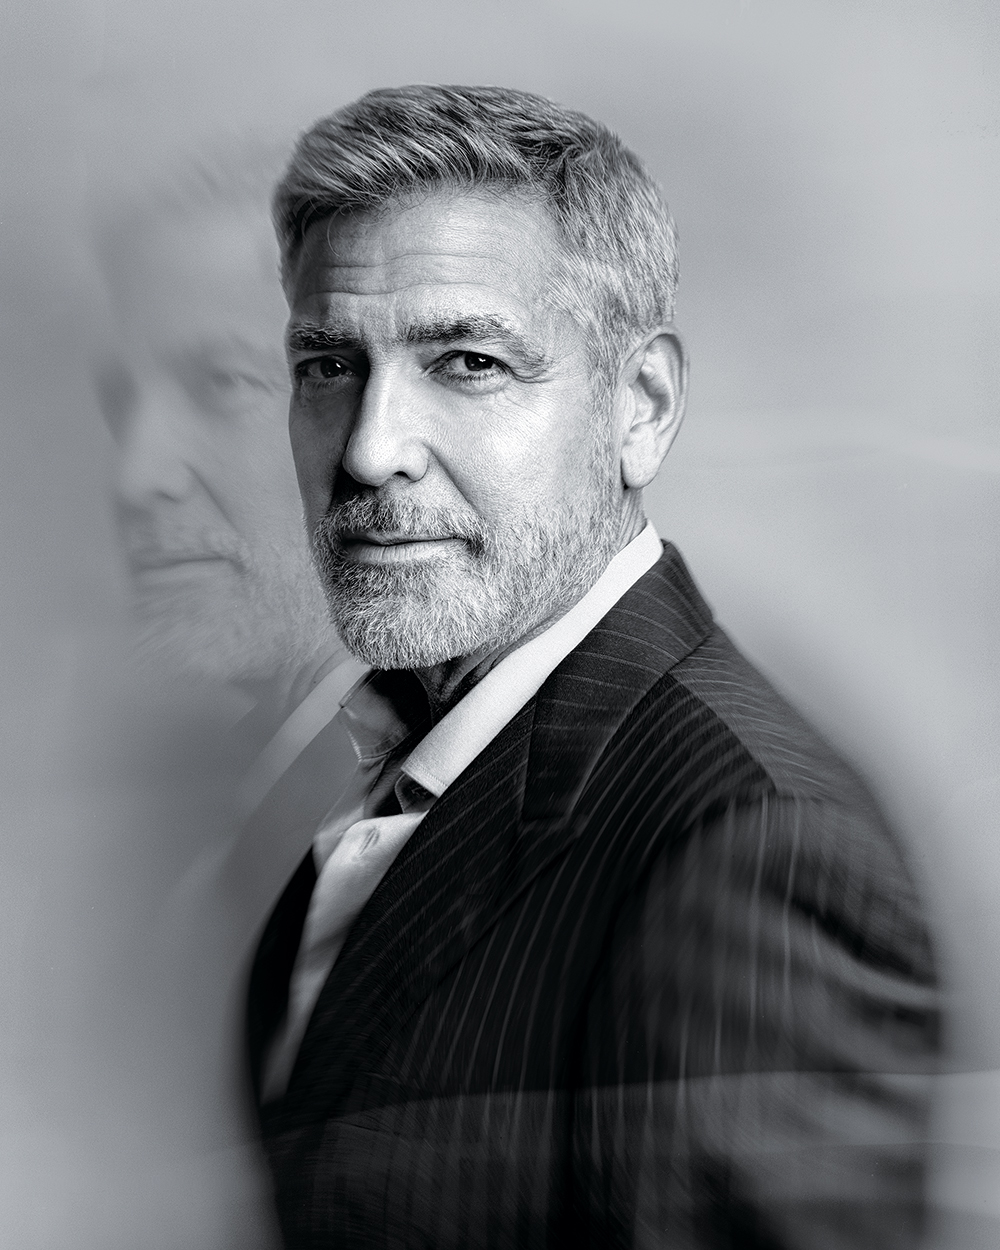 George Clooney from Catch-22 photographed by Marco Grob on Feb. 11, 2019 in Pasadena, CA